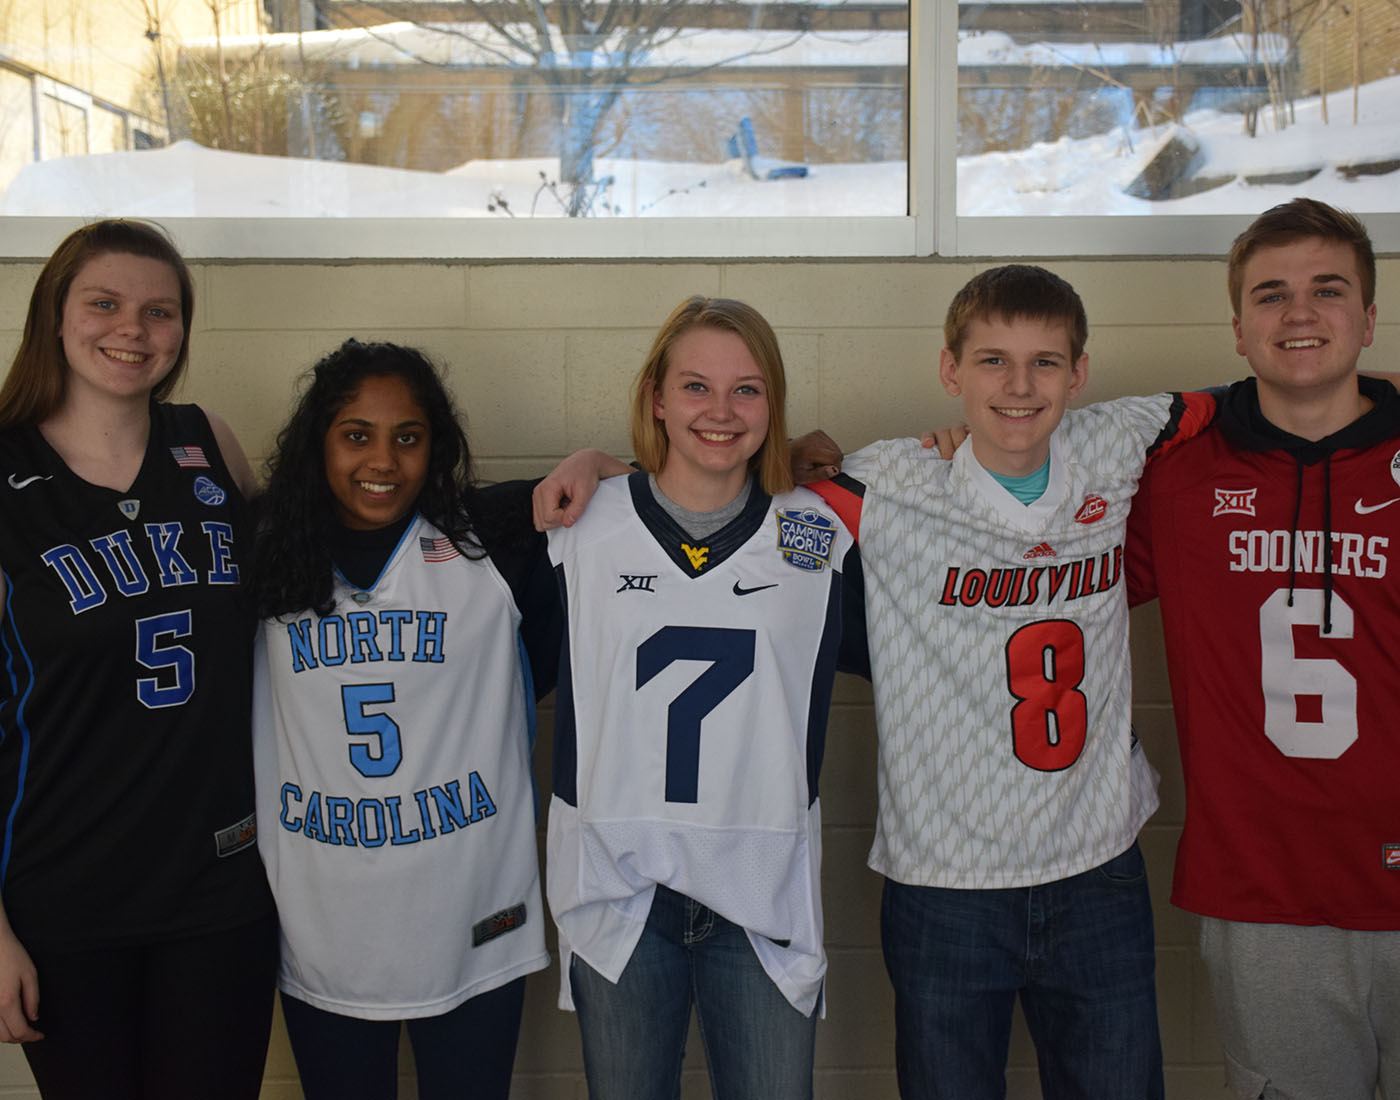 NCAA jerseys supports the program. Athletes should not be paid.